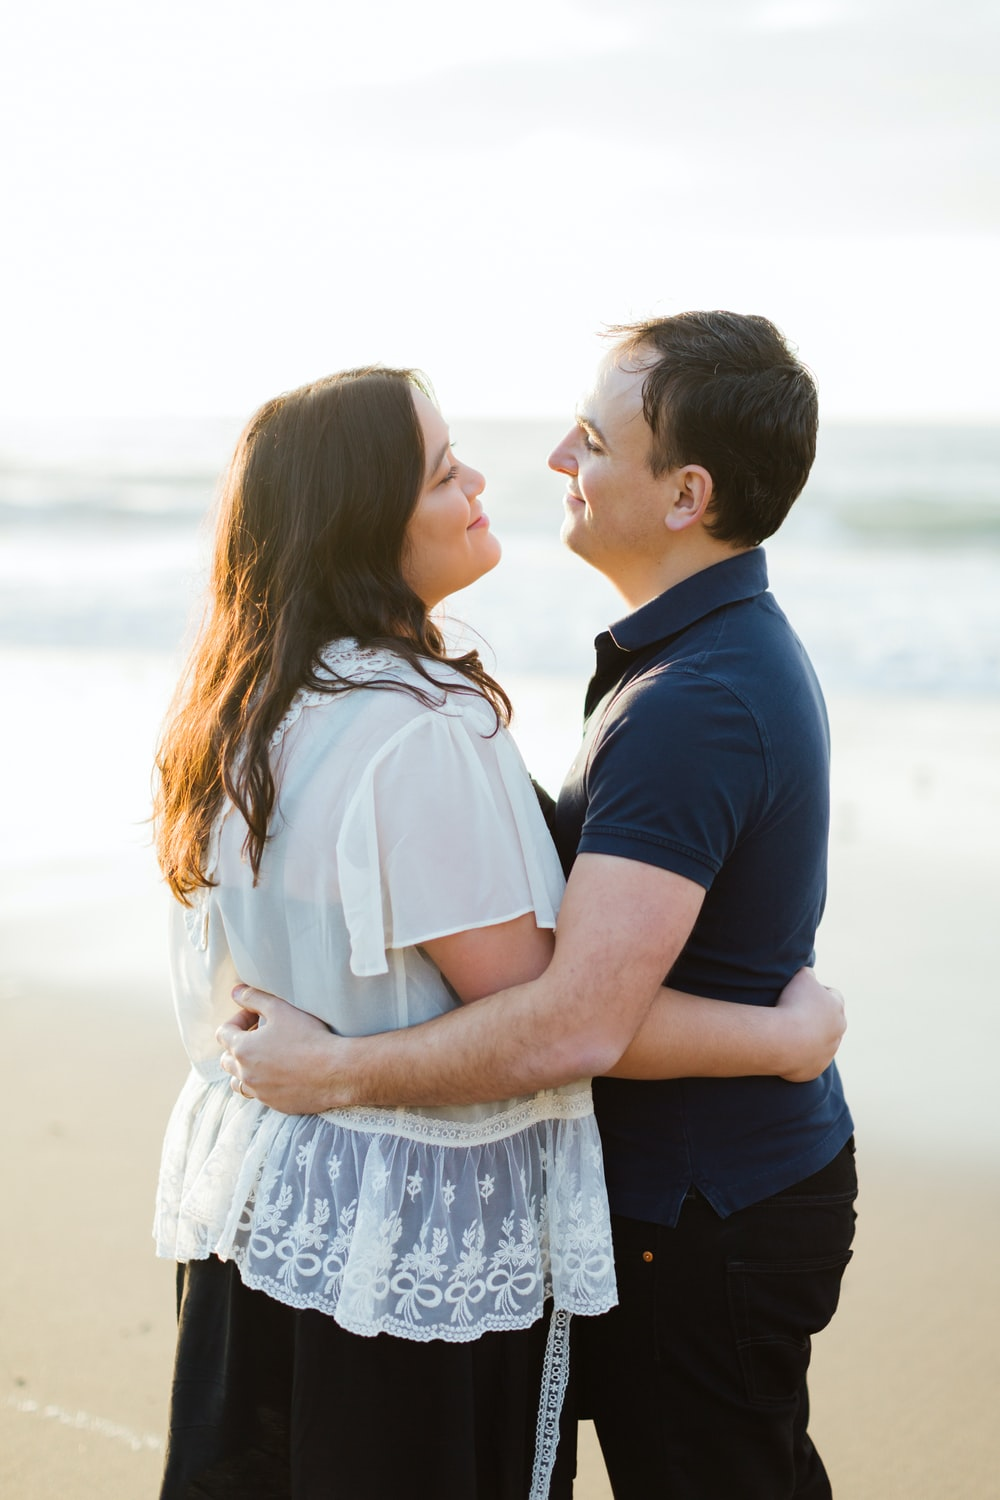 man and woman hugging each other near shoreline during daytime